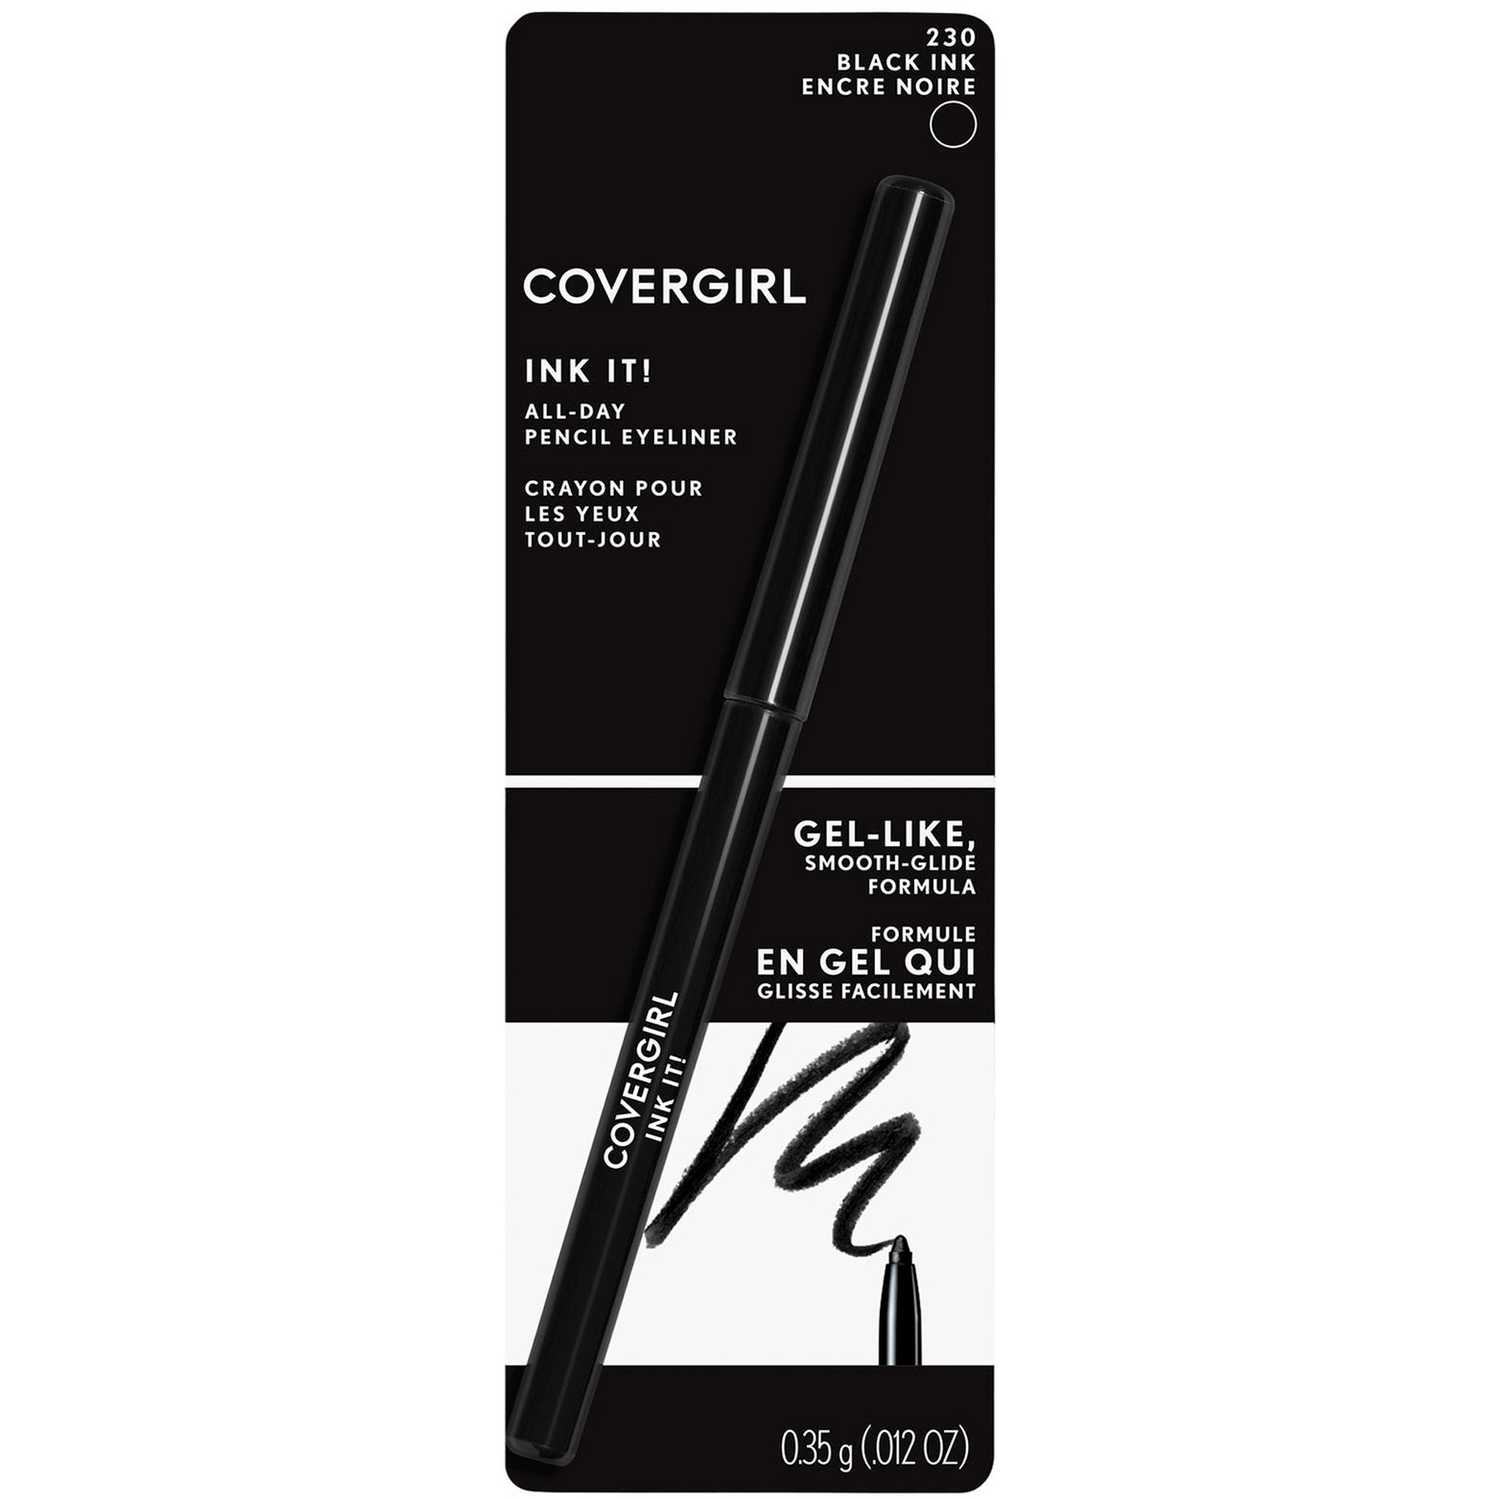 Covergirl delineador ojos ink it Black Ink Delineador y Sombra Combinaciones